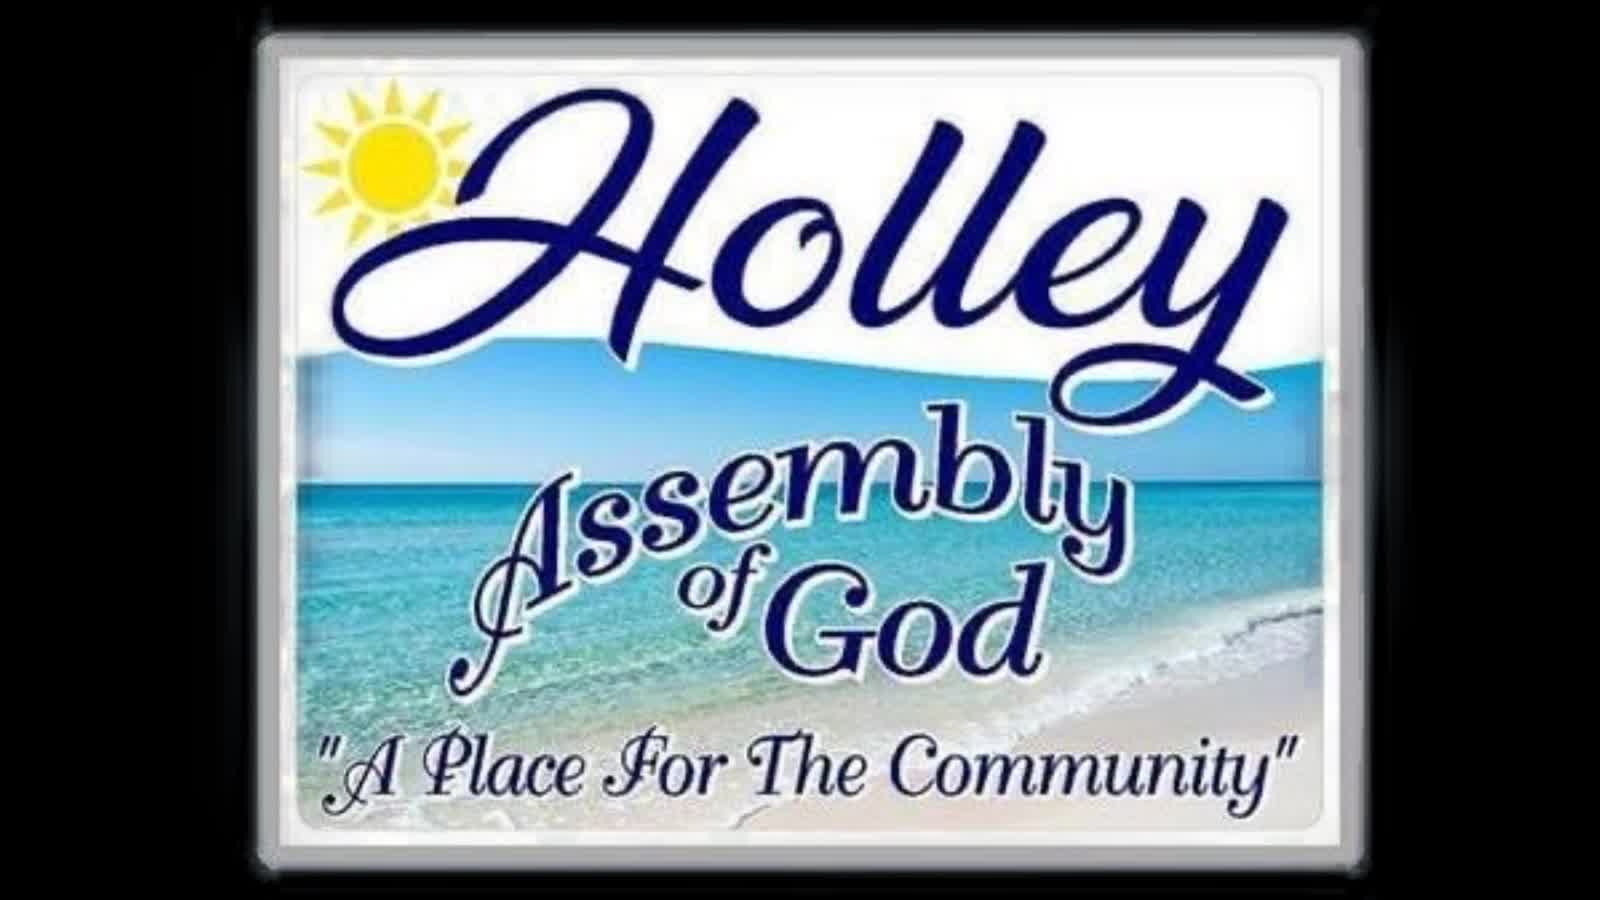 Holley Assembly of God Weekly Service